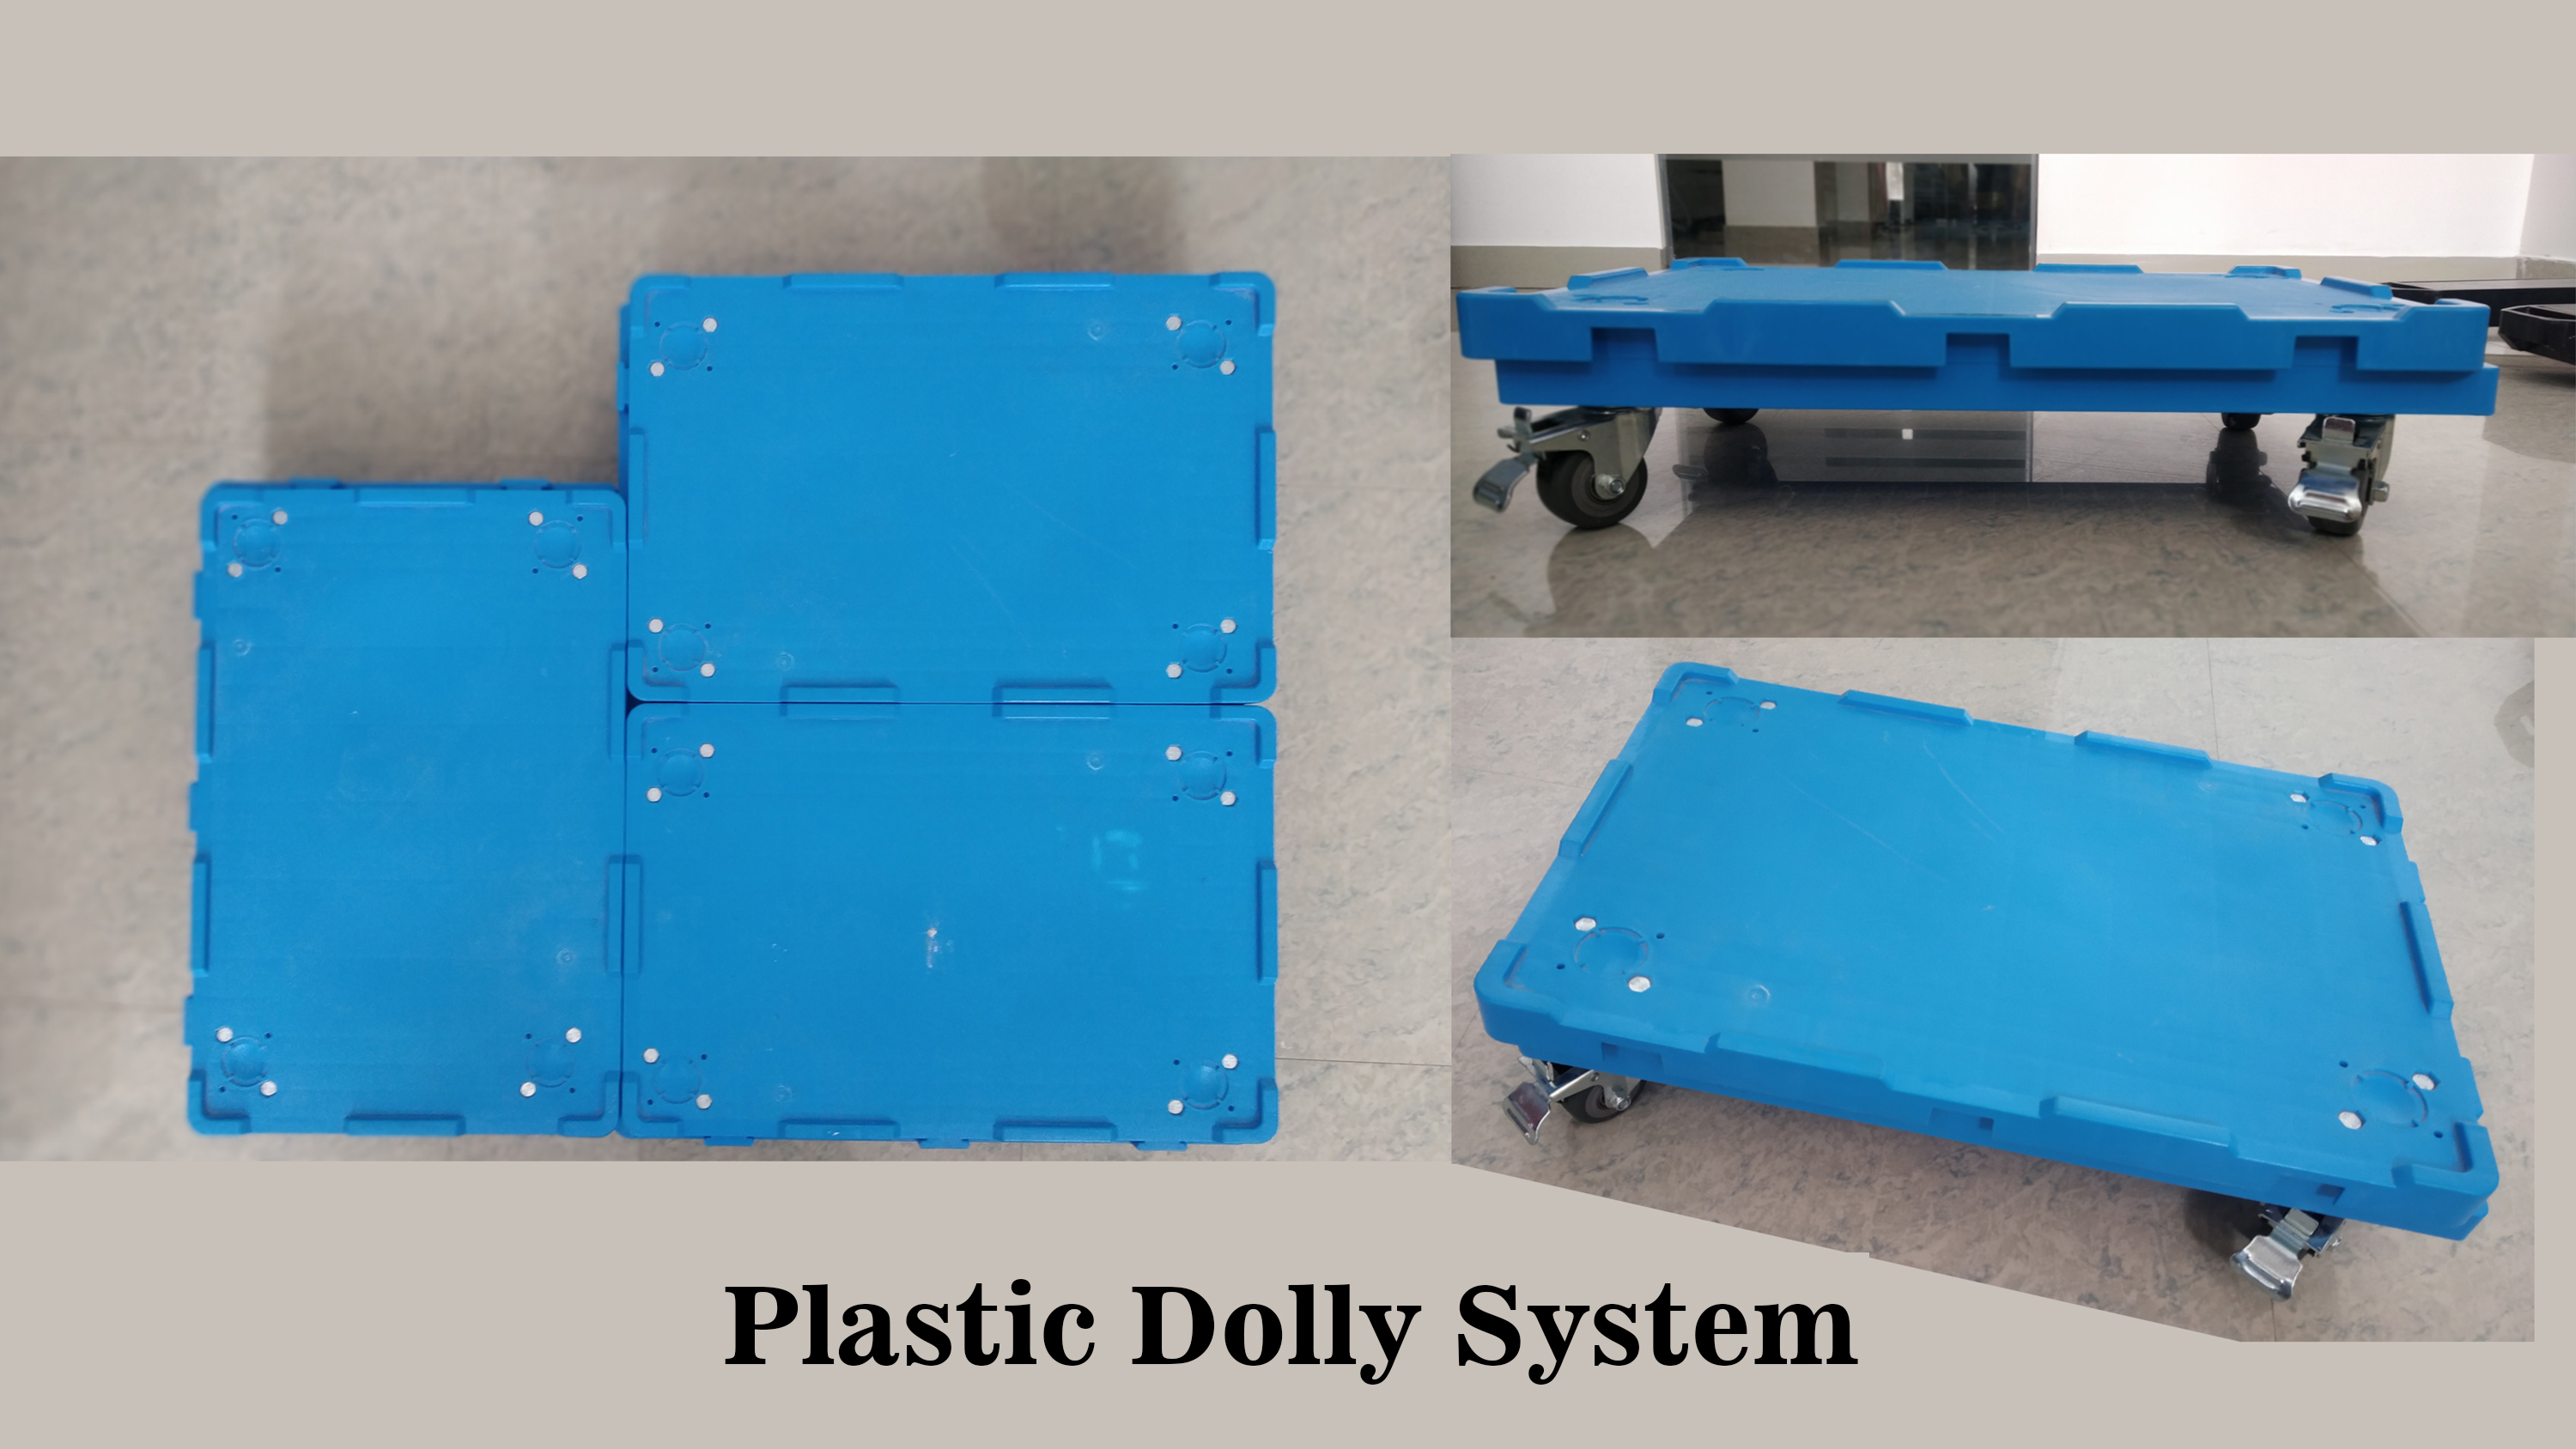 Plastic Dolly System